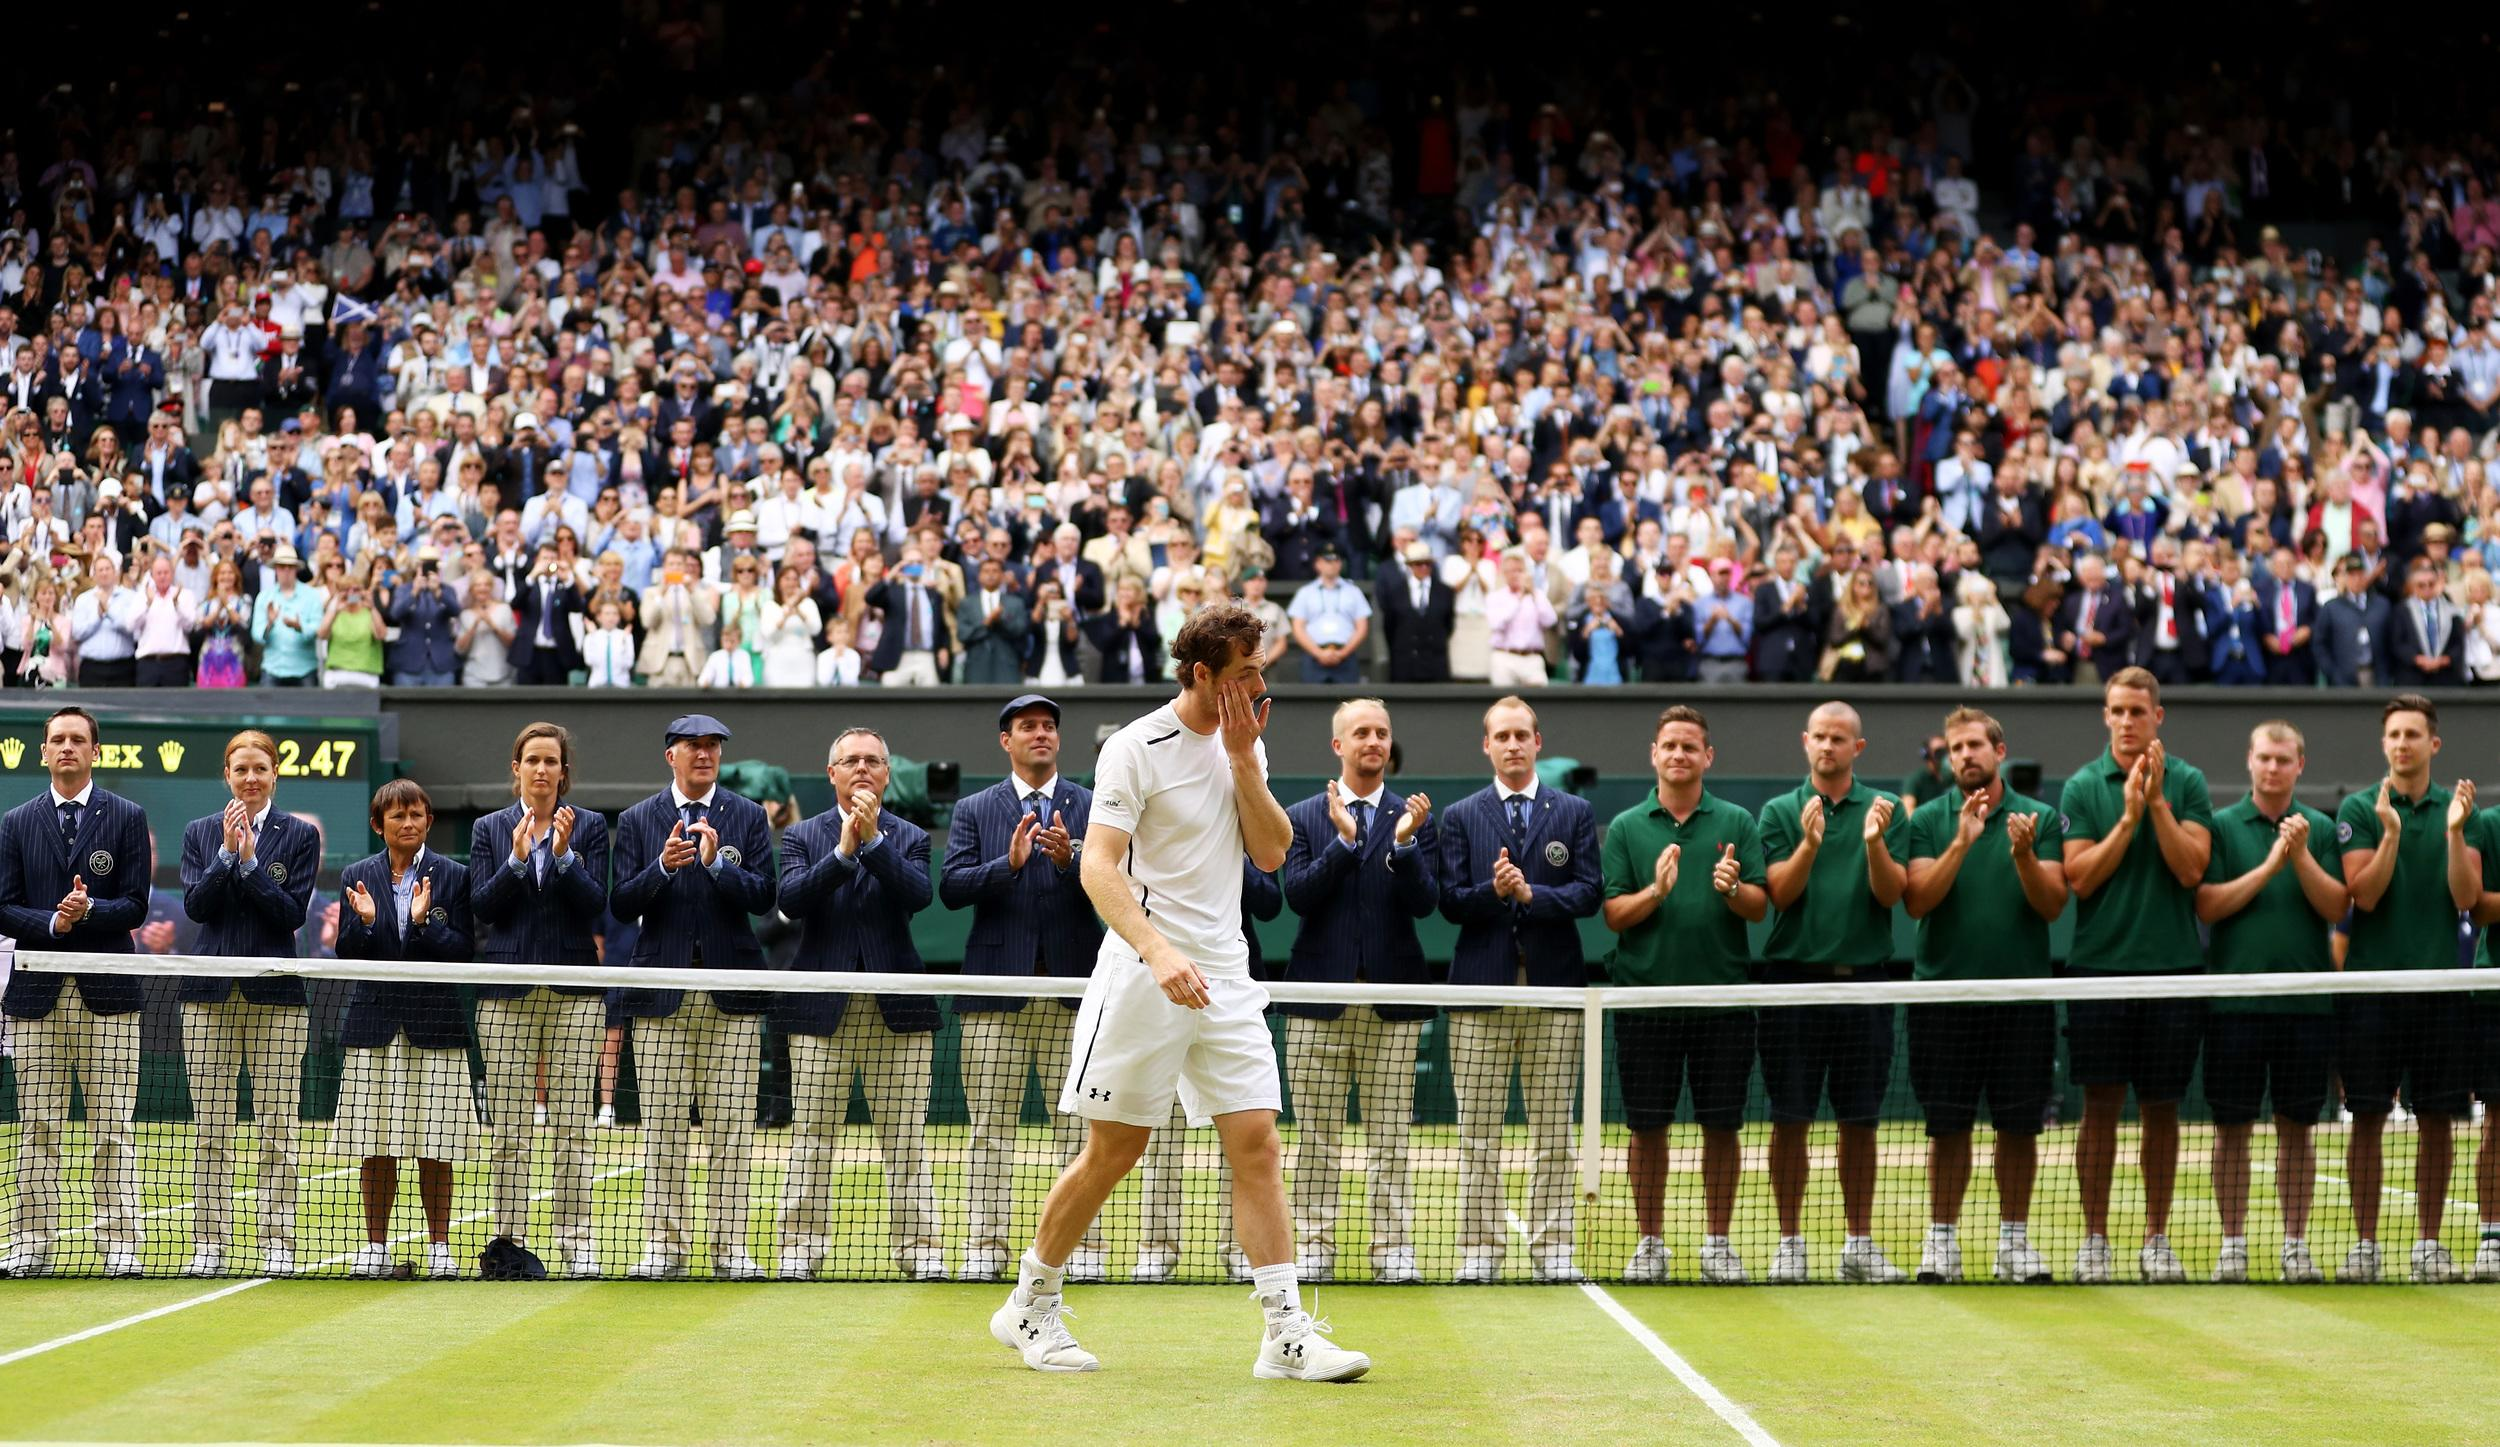 Andy Murray goes to collect trophy.